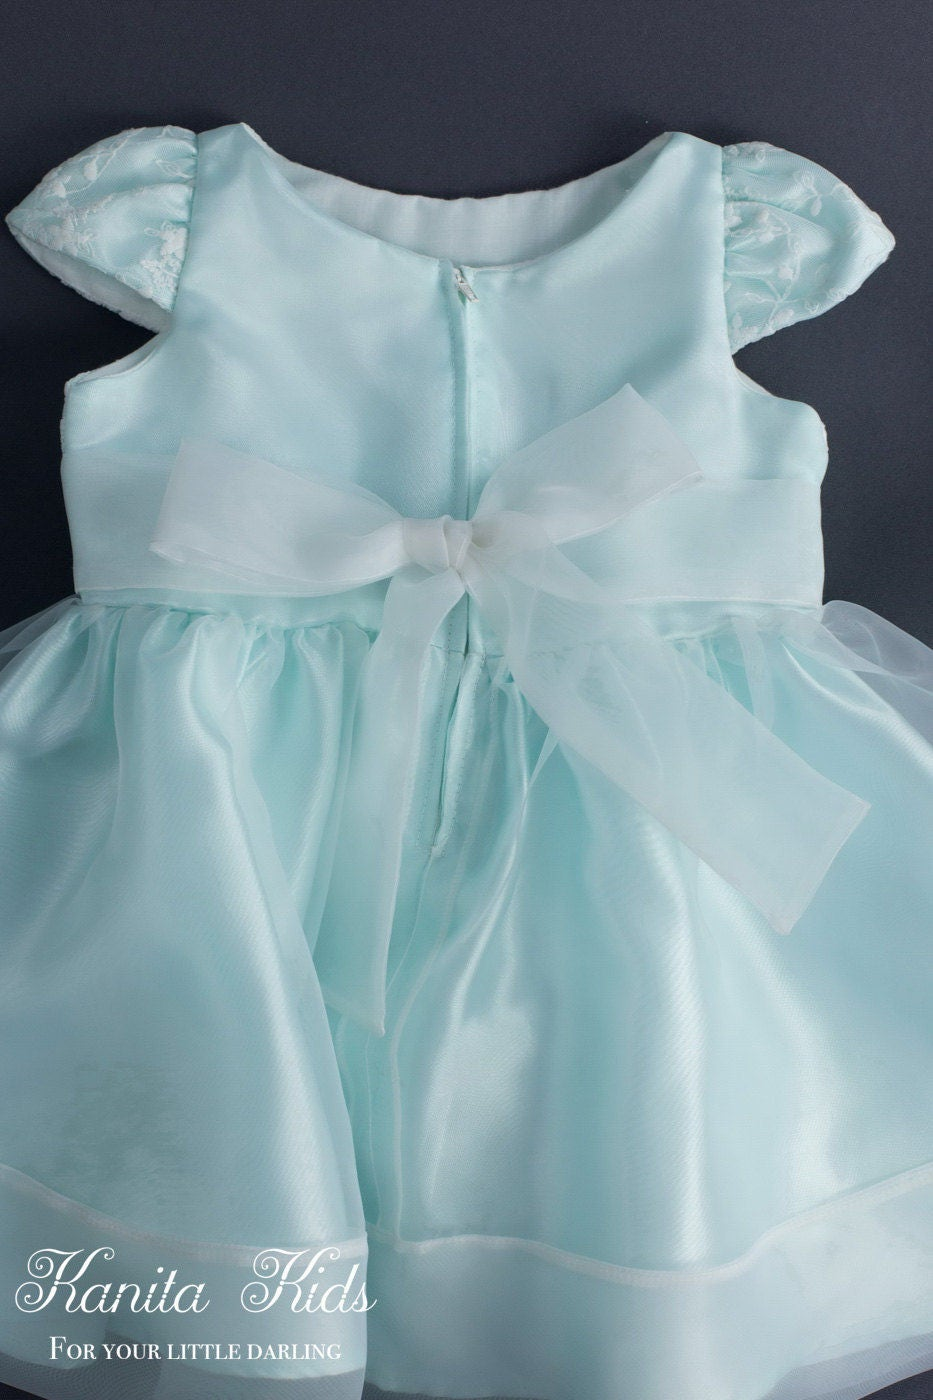 Mint junior bridesmaid dress girls easter dress flower girls mint junior bridesmaid dress girls easter dress flower girls dress girls party dress ombrellifo Choice Image